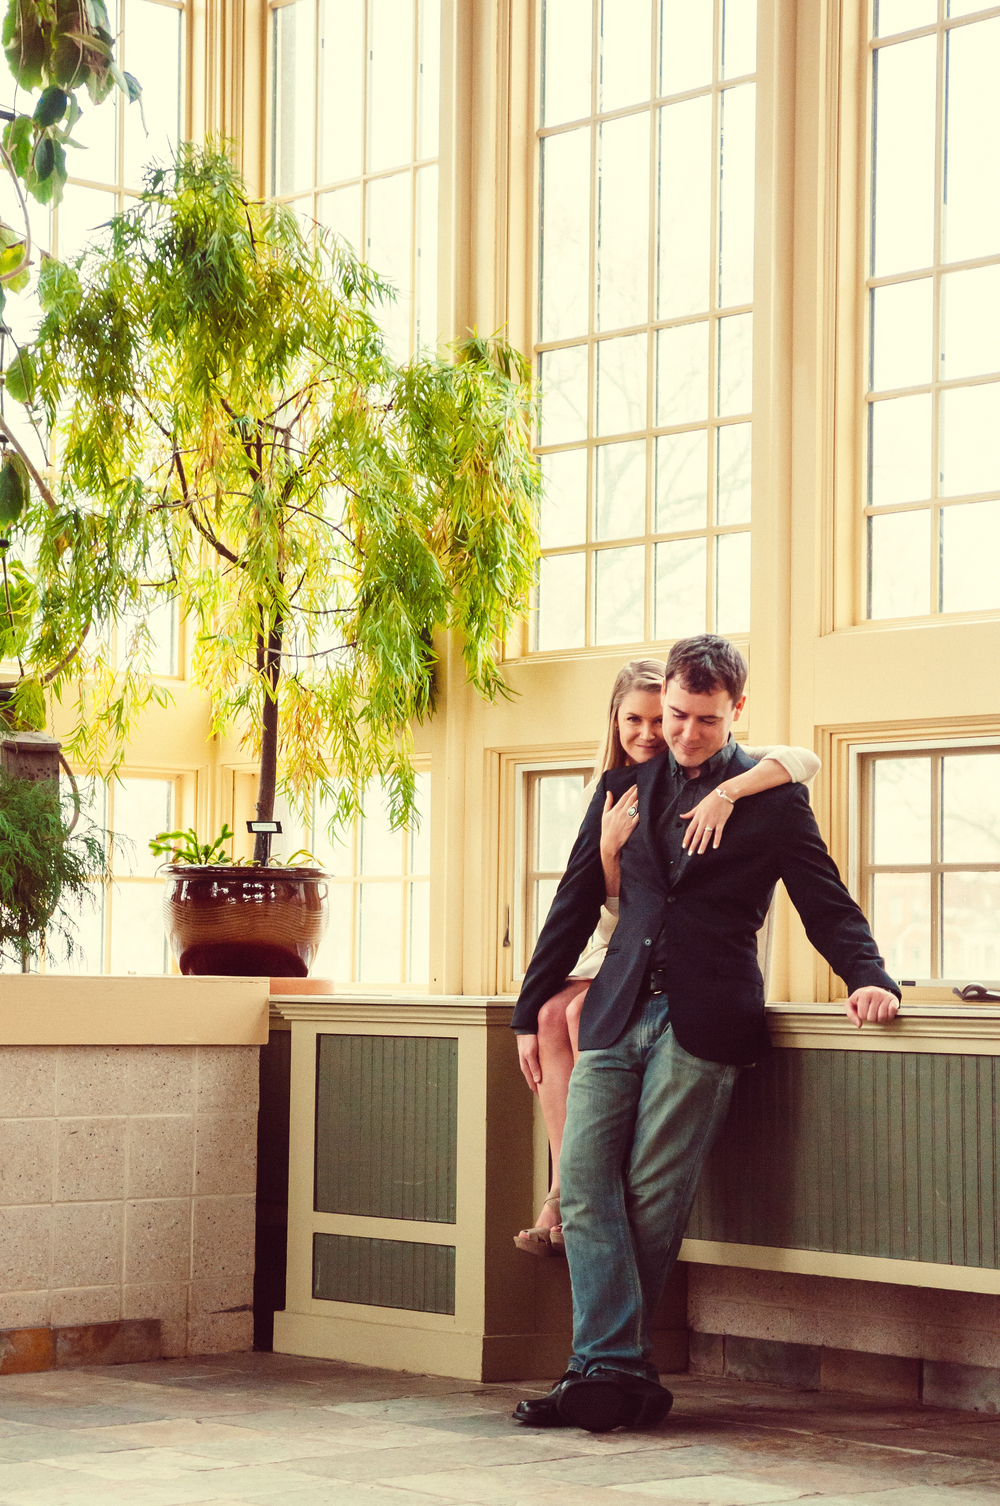 Baltimore Engagement Photography - Rawlings Conservatory